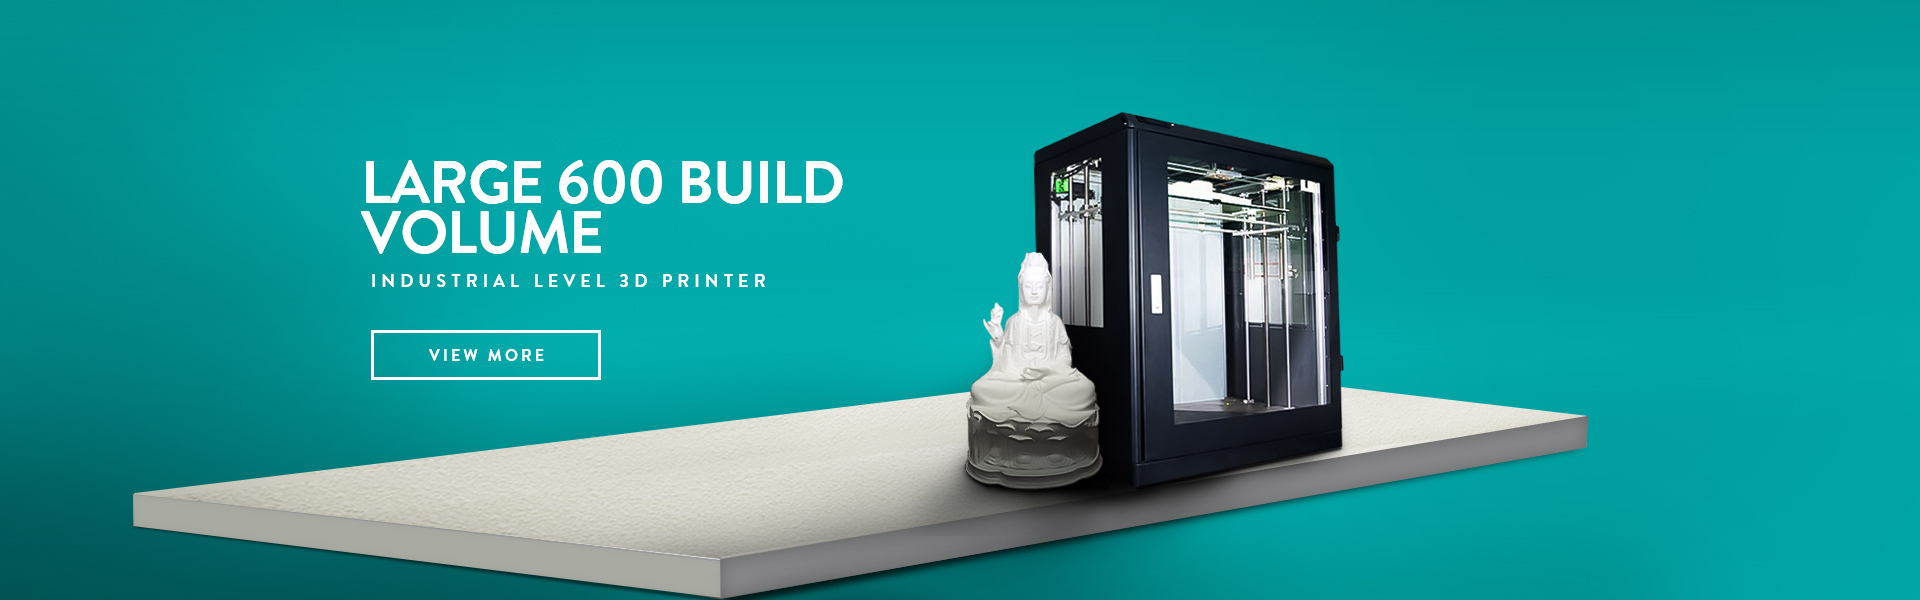 YASIN 3D 600 Large Size Industrial Level 3D Printer